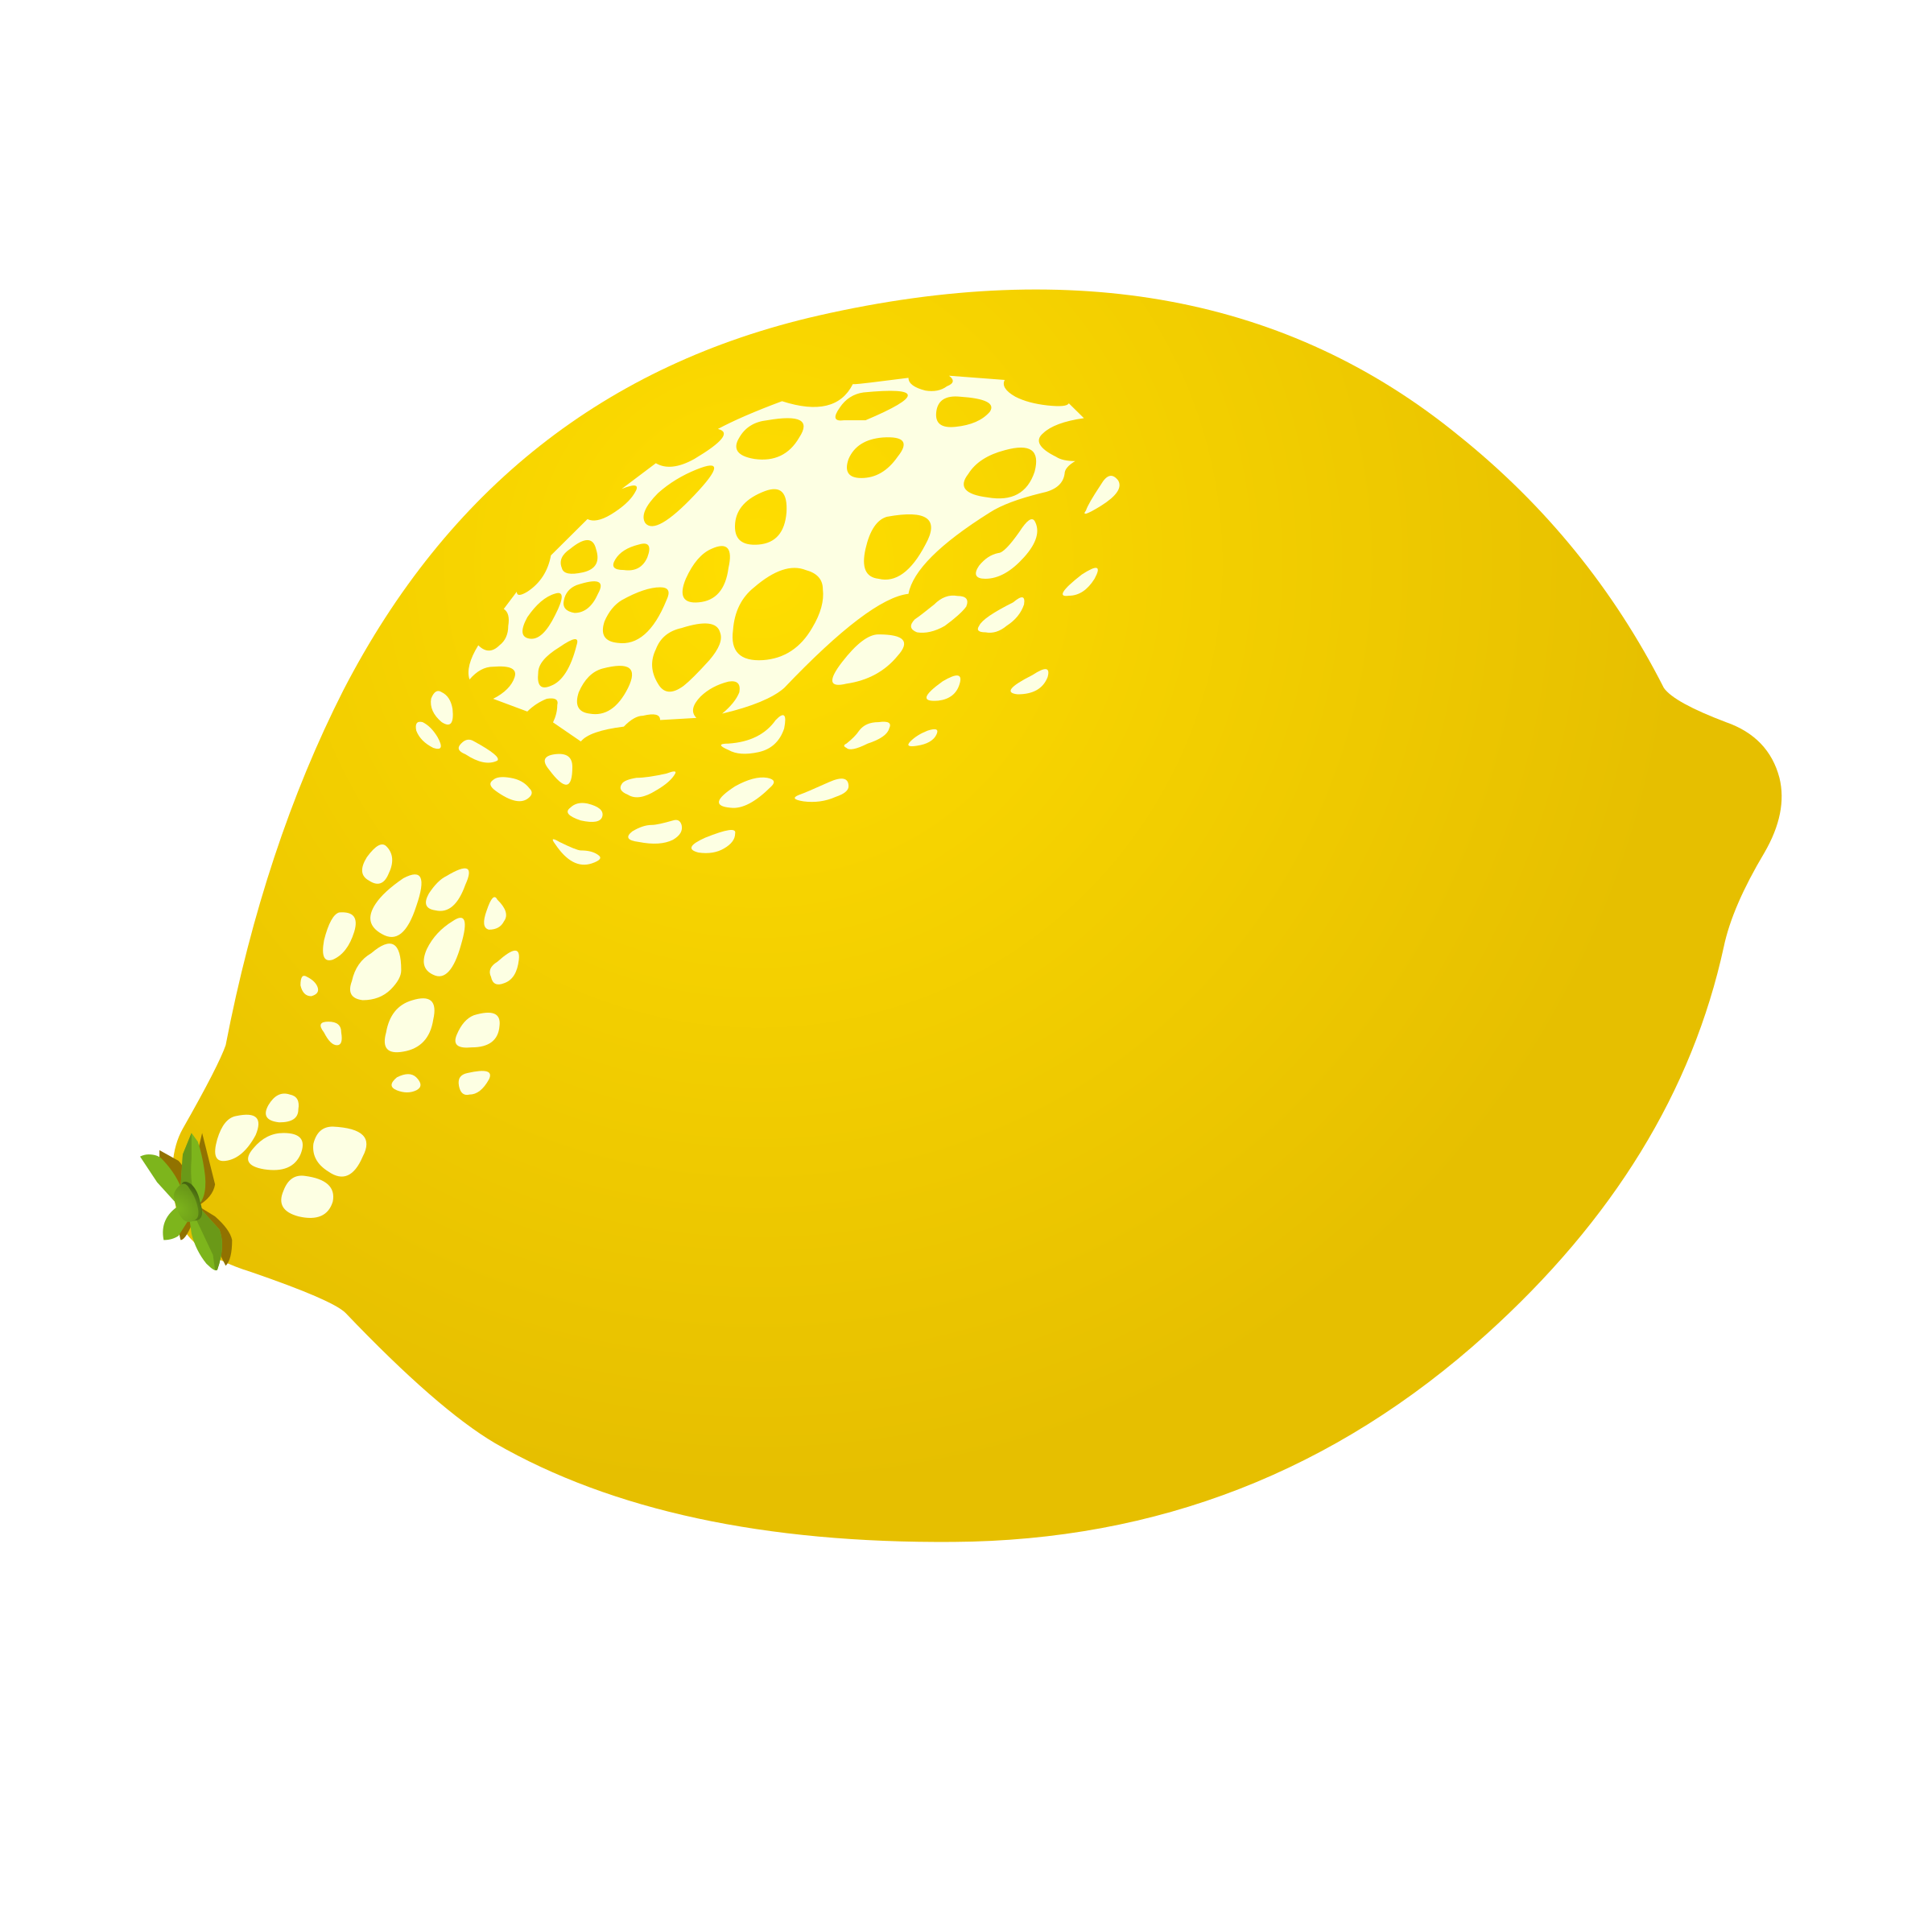 Lemon car clipart graphic black and white Lemon Clipart at GetDrawings.com   Free for personal use Lemon ... graphic black and white